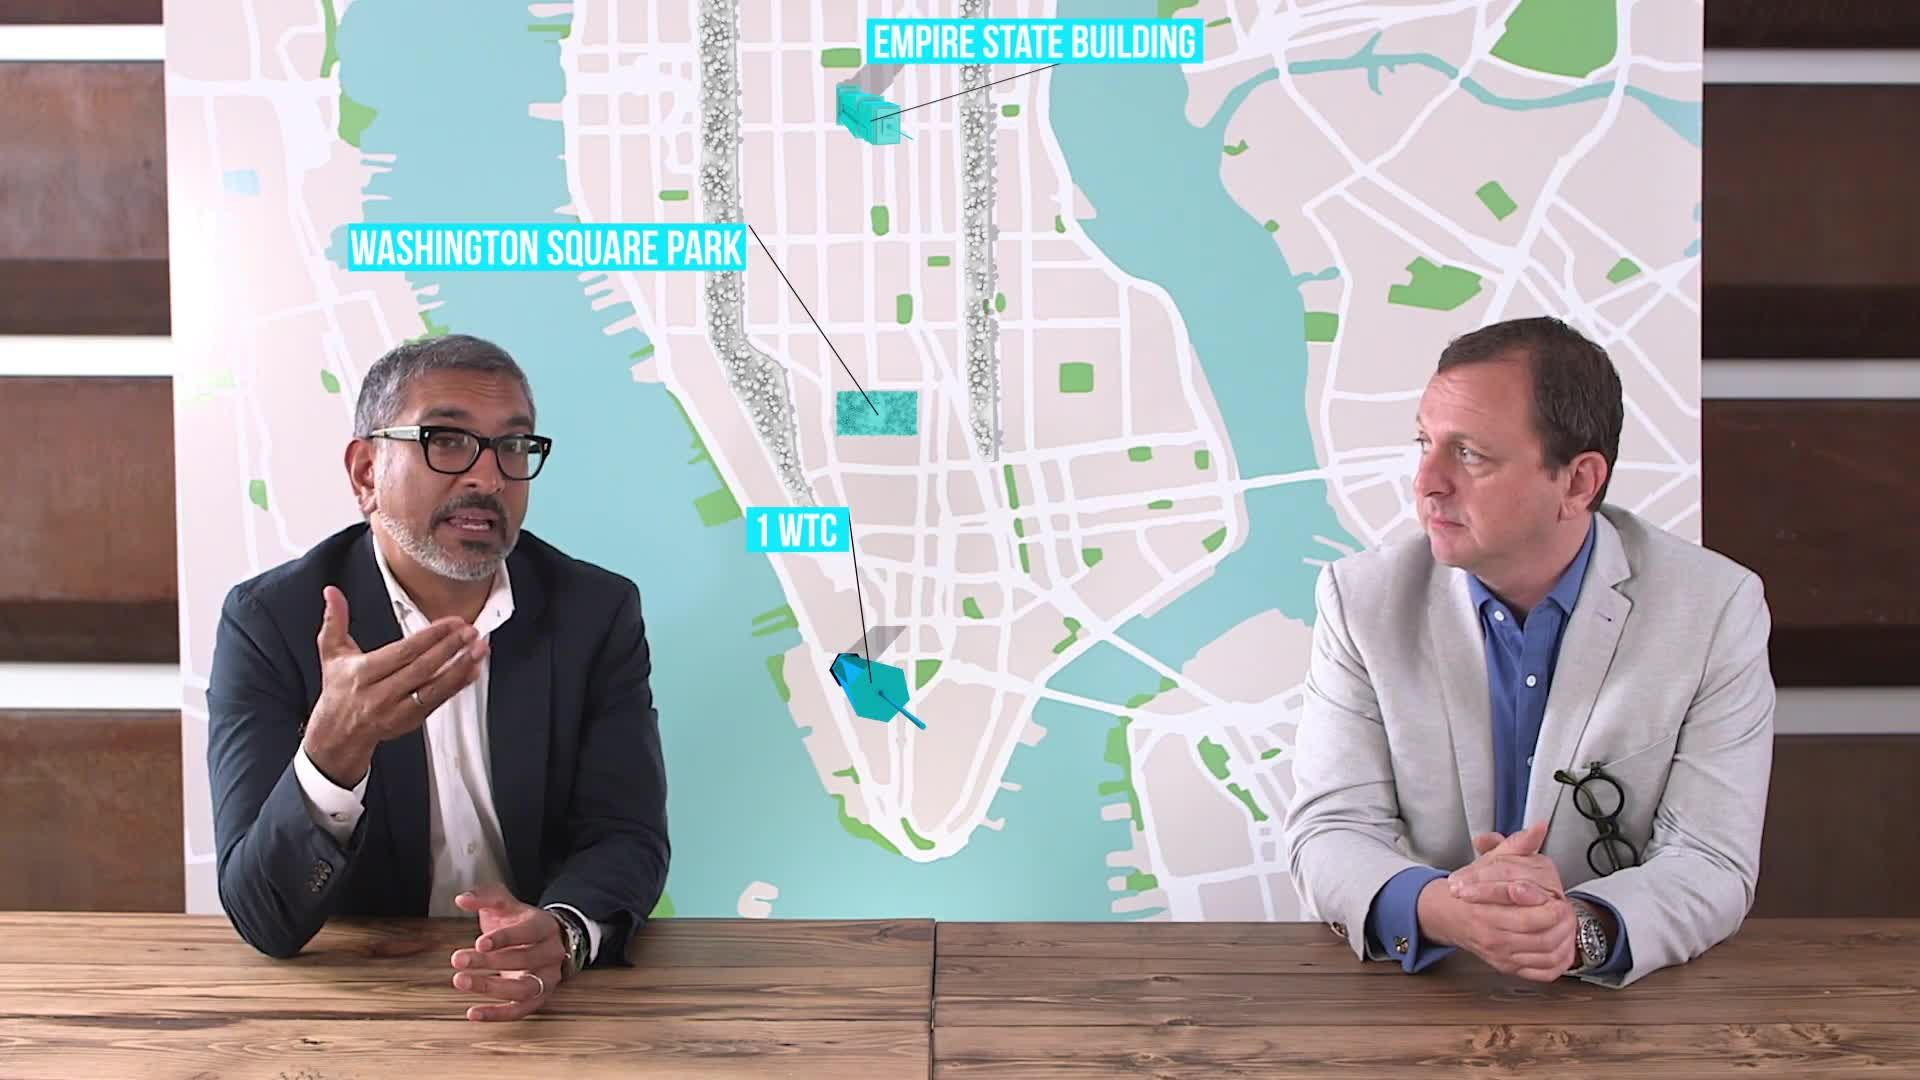 Two Architects Give NYC a Makeover